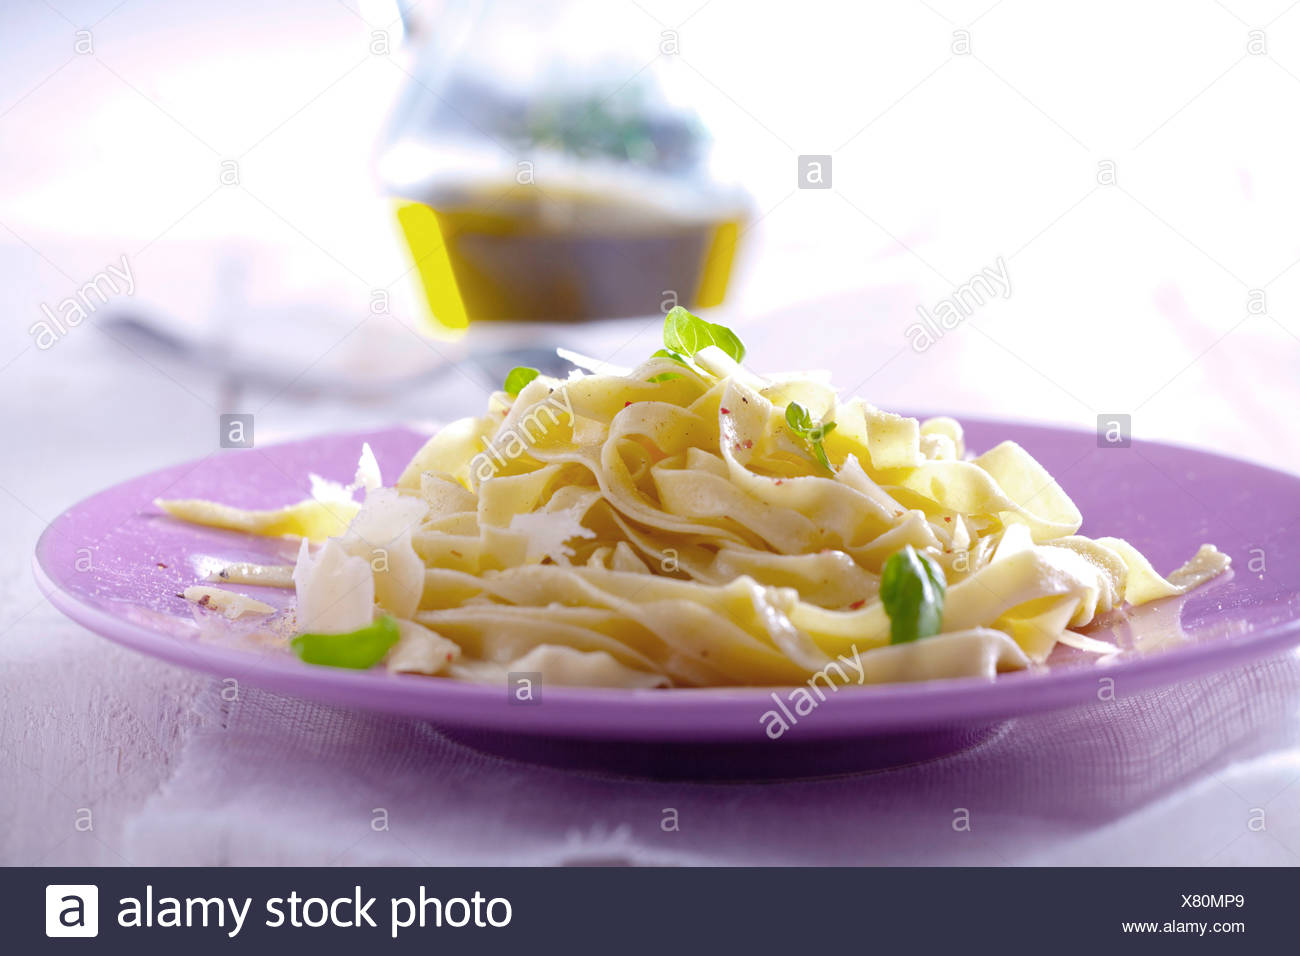 Ribbon pasta with olive oil, parmesan and basil - Stock Image